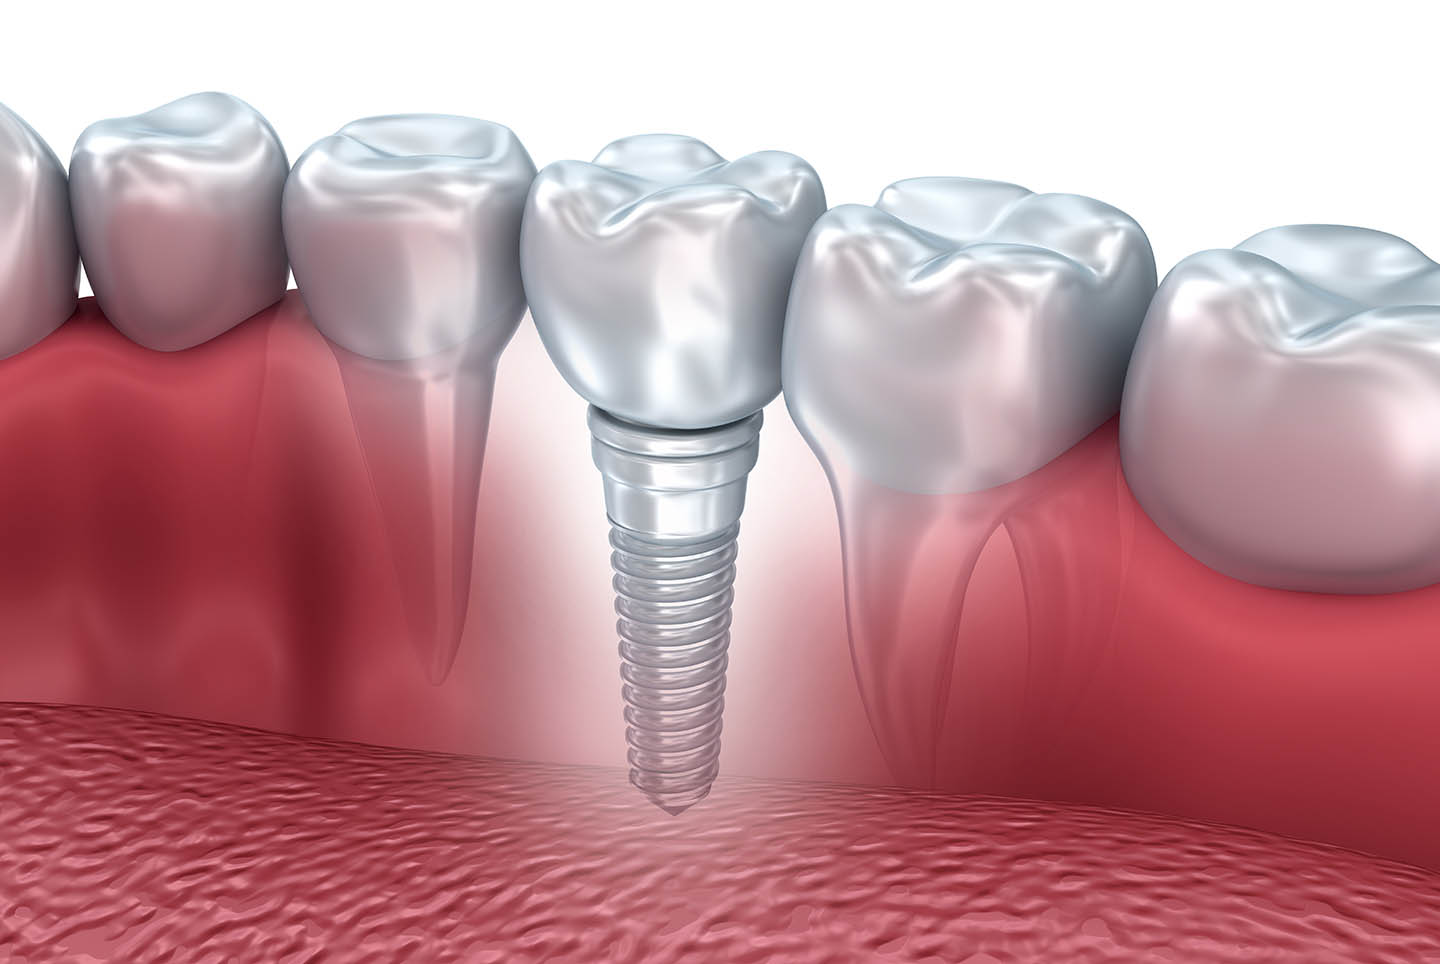 Tooth implant graphic